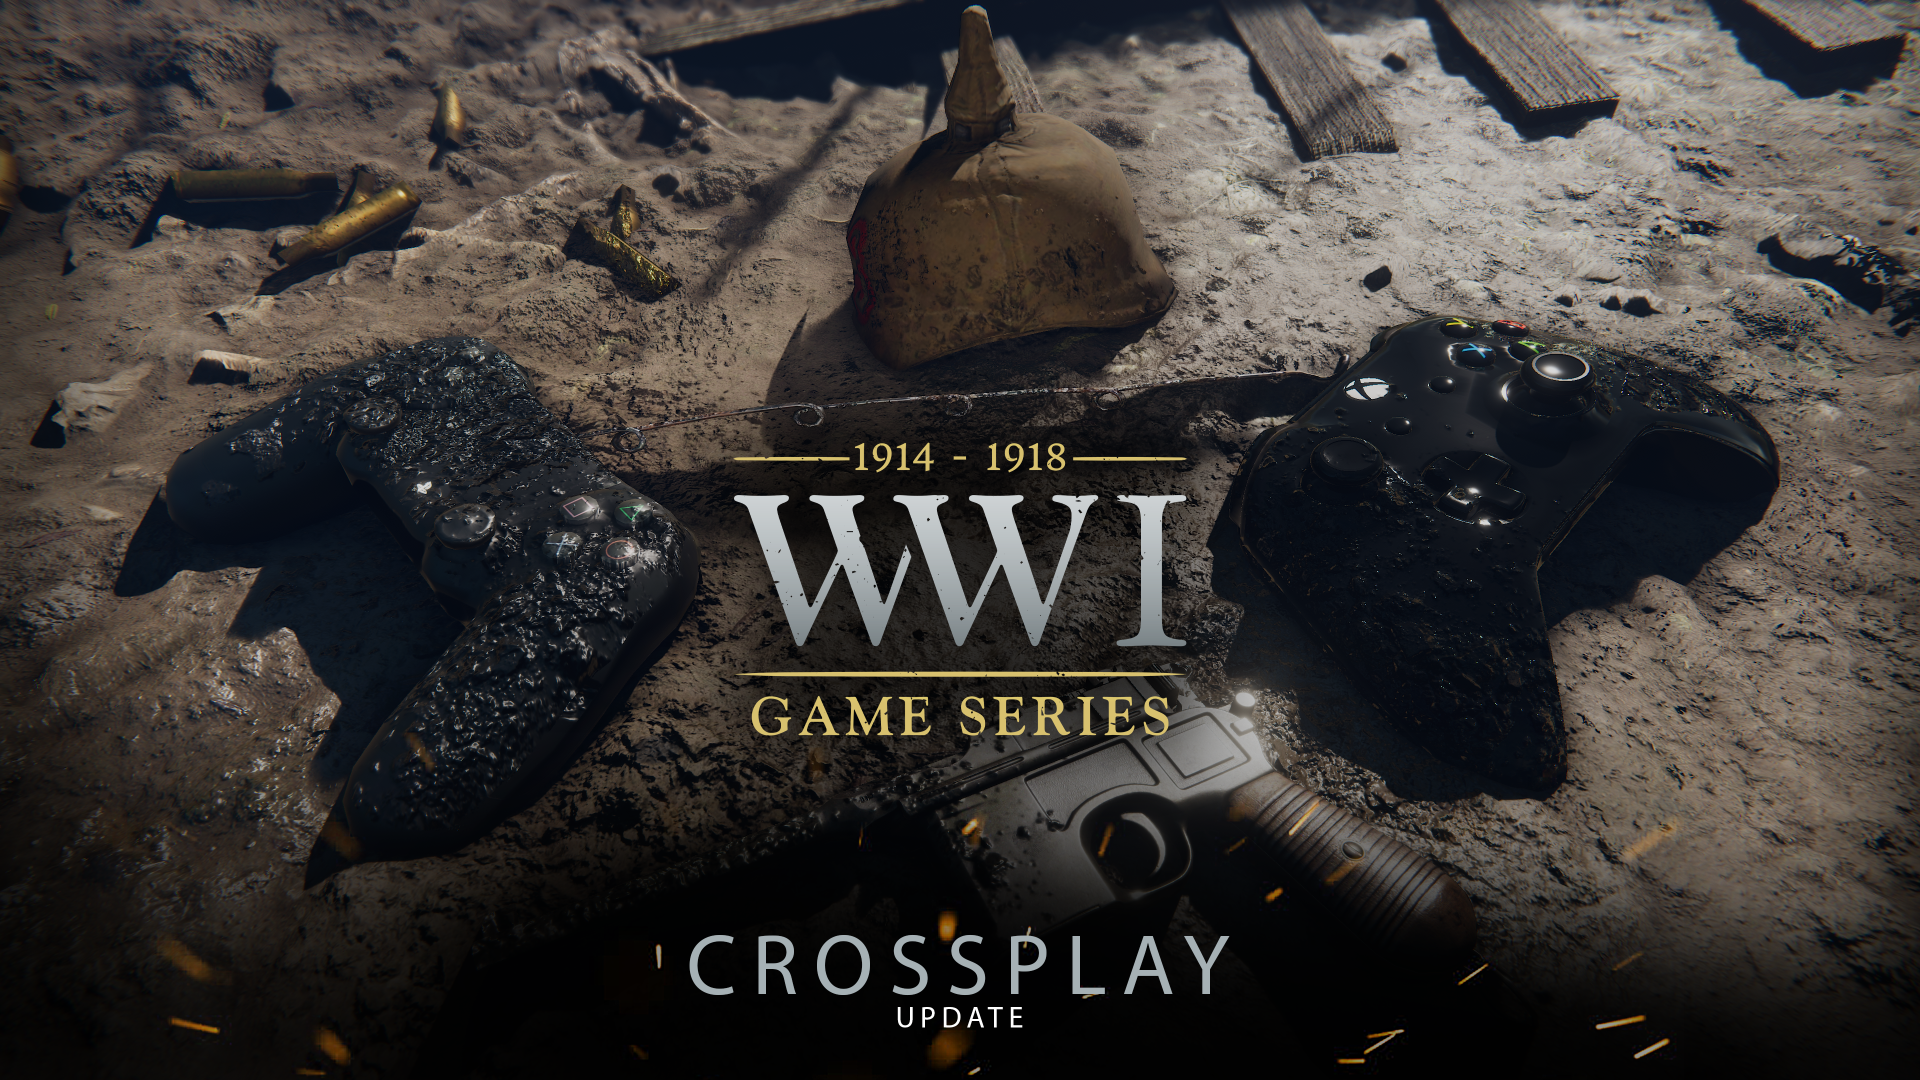 ww1series 2020 crossplay small